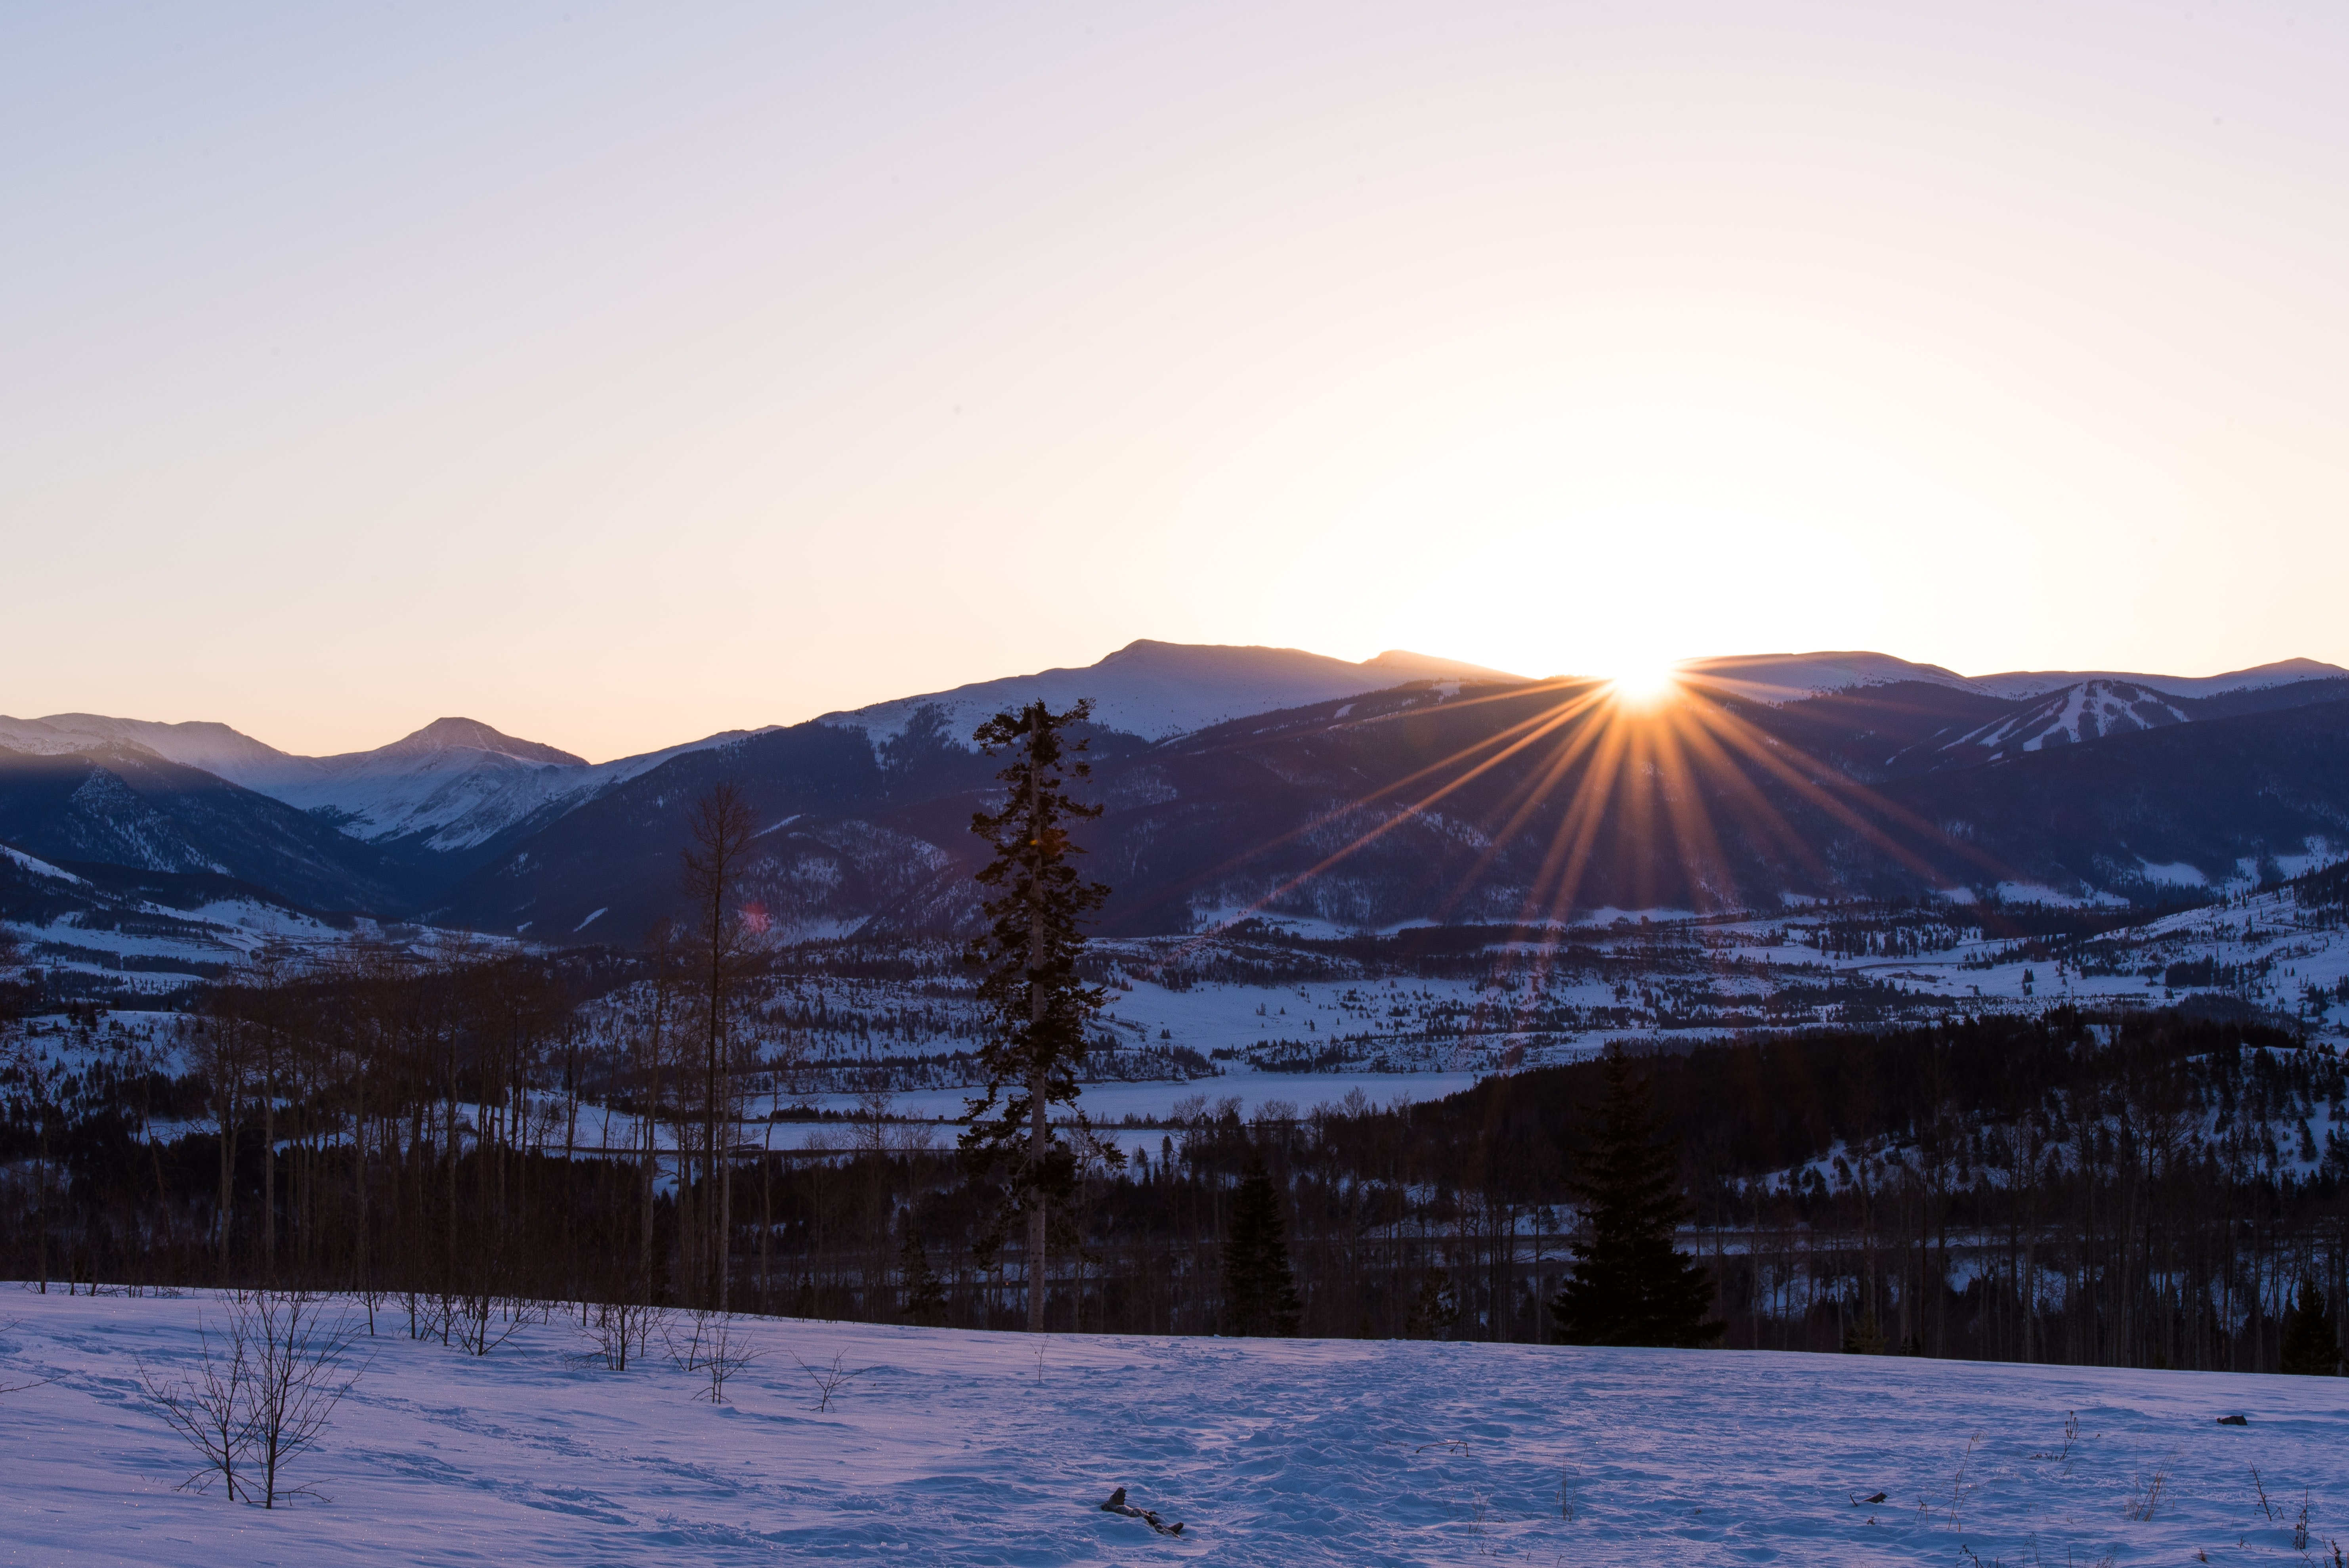 Setting sun diving behind a snow-covered mountain ridge in Silverthorne